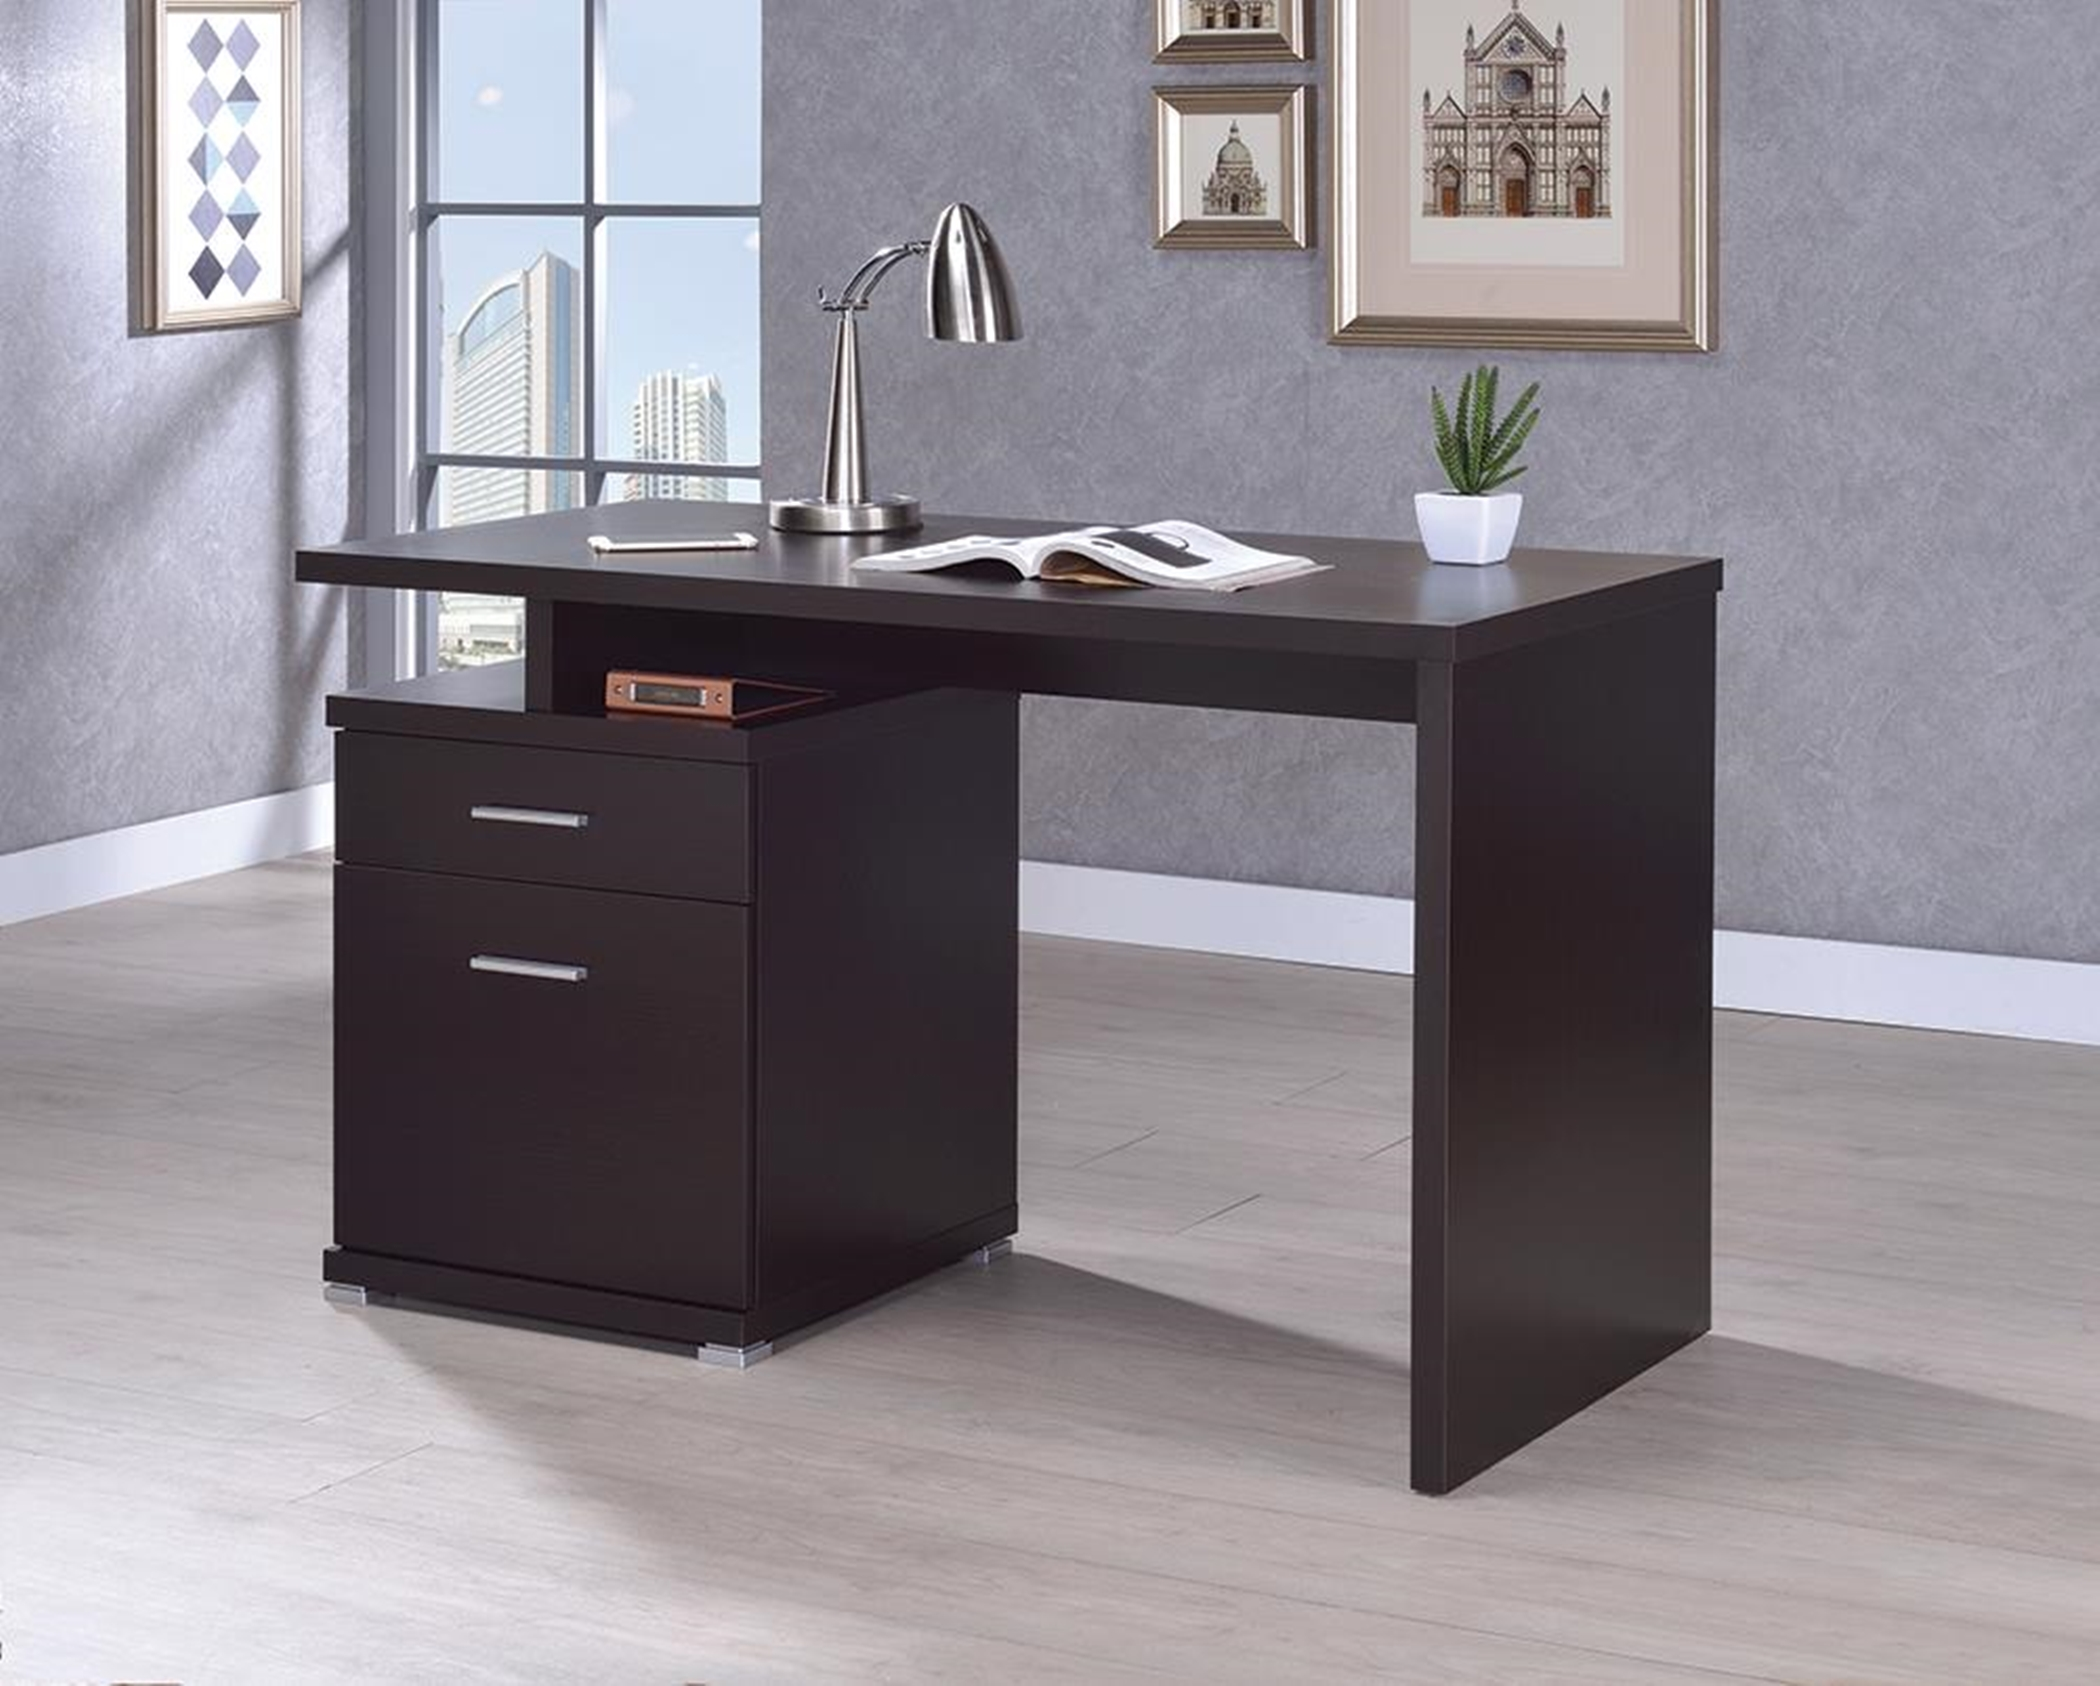 Office Desk with Drawer in Capp.